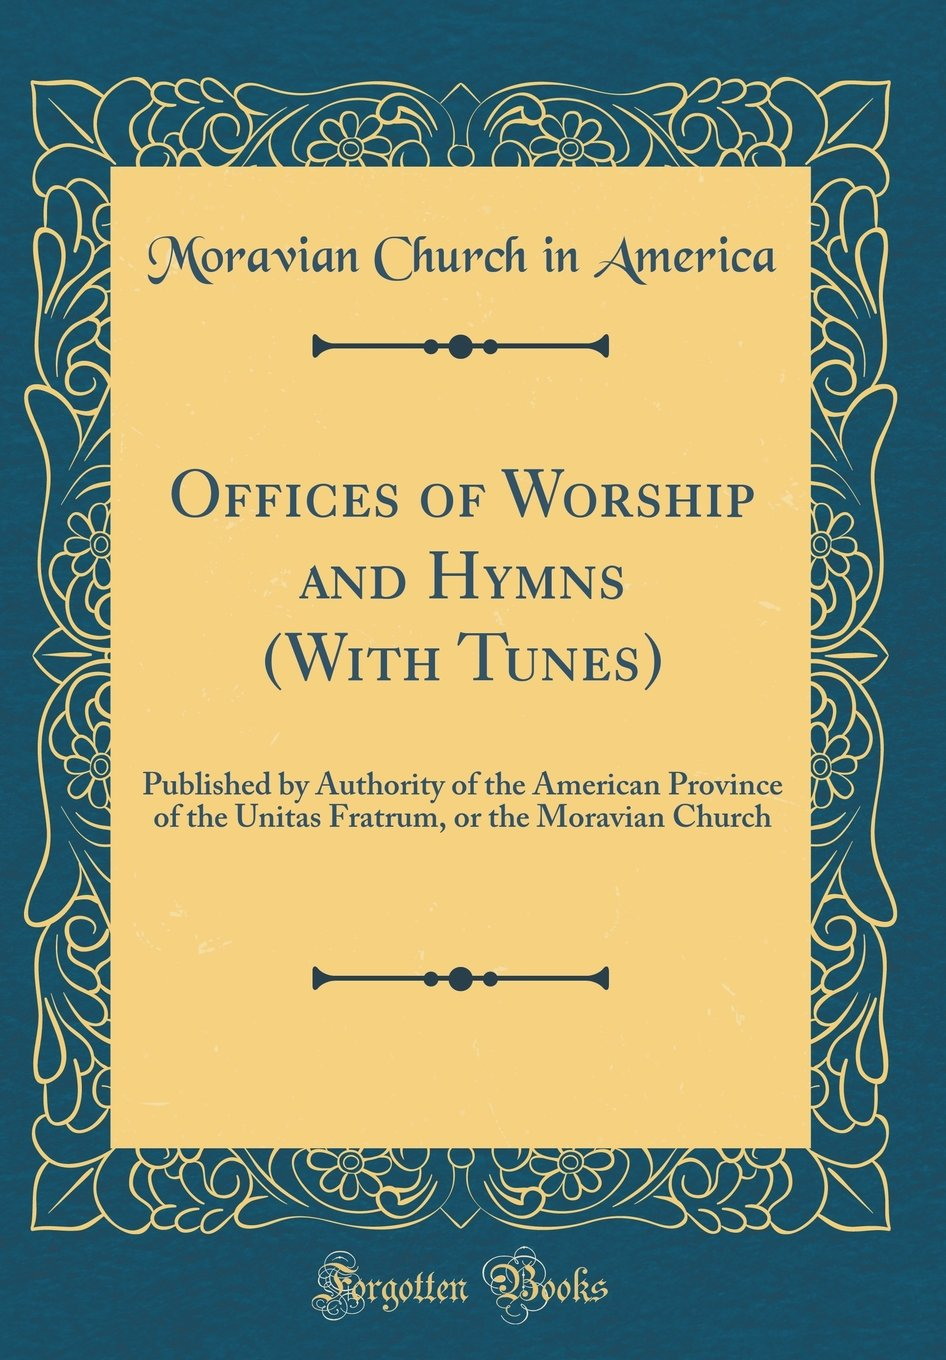 Download Offices of Worship and Hymns (With Tunes): Published by Authority of the American Province of the Unitas Fratrum, or the Moravian Church (Classic Reprint) pdf